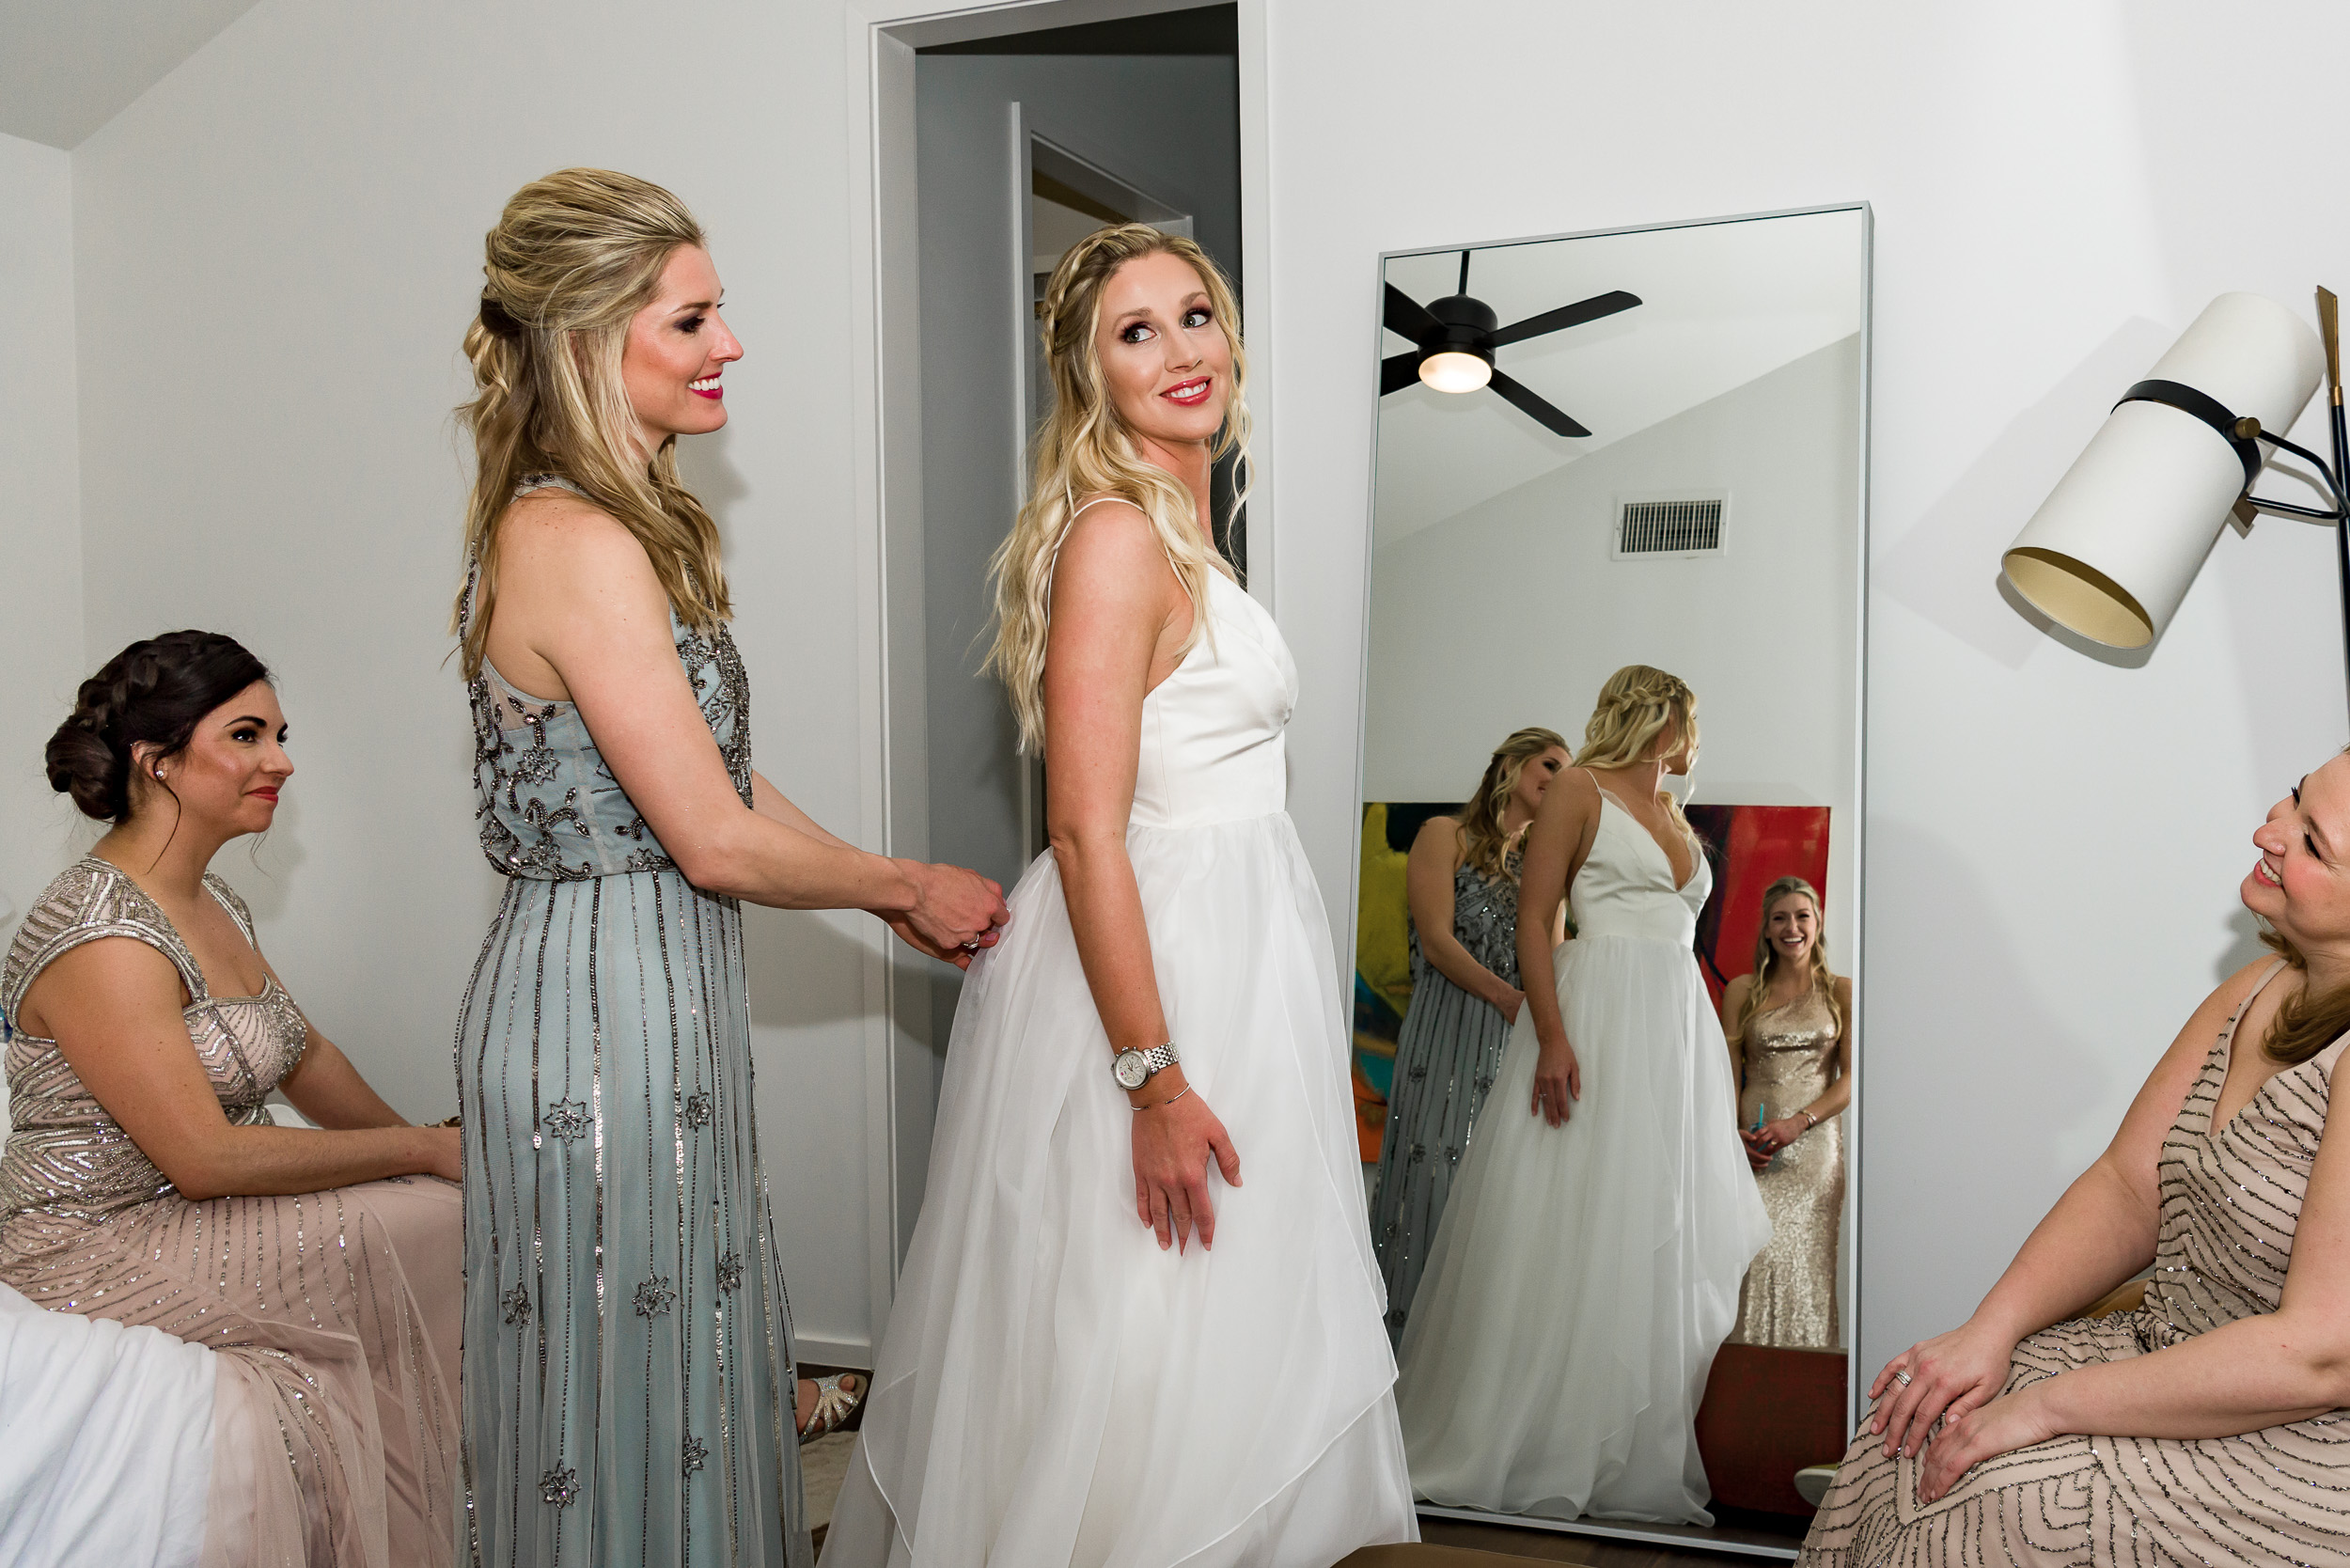 Austin-wedding-photographers-bride-dress-getting-ready-mirror